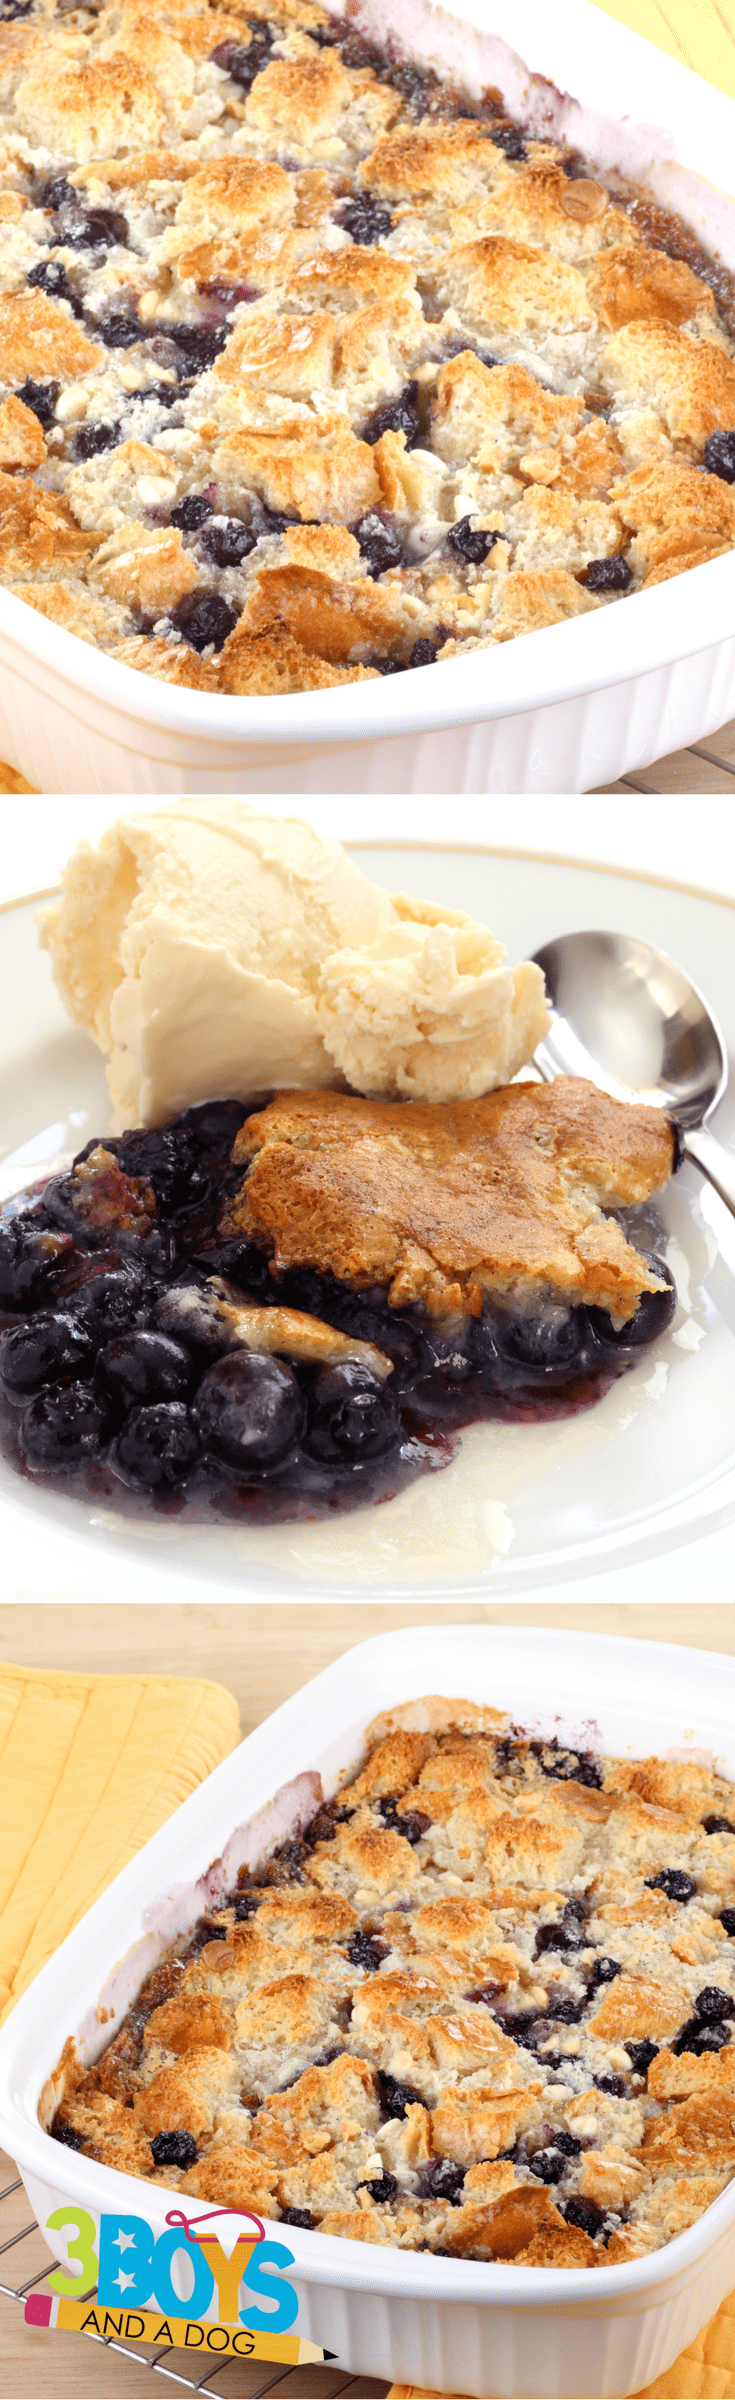 This Blueberry Cake Mix Cobbler Recipe Is A Favorite Eaten Almost Right Out Of The Oven